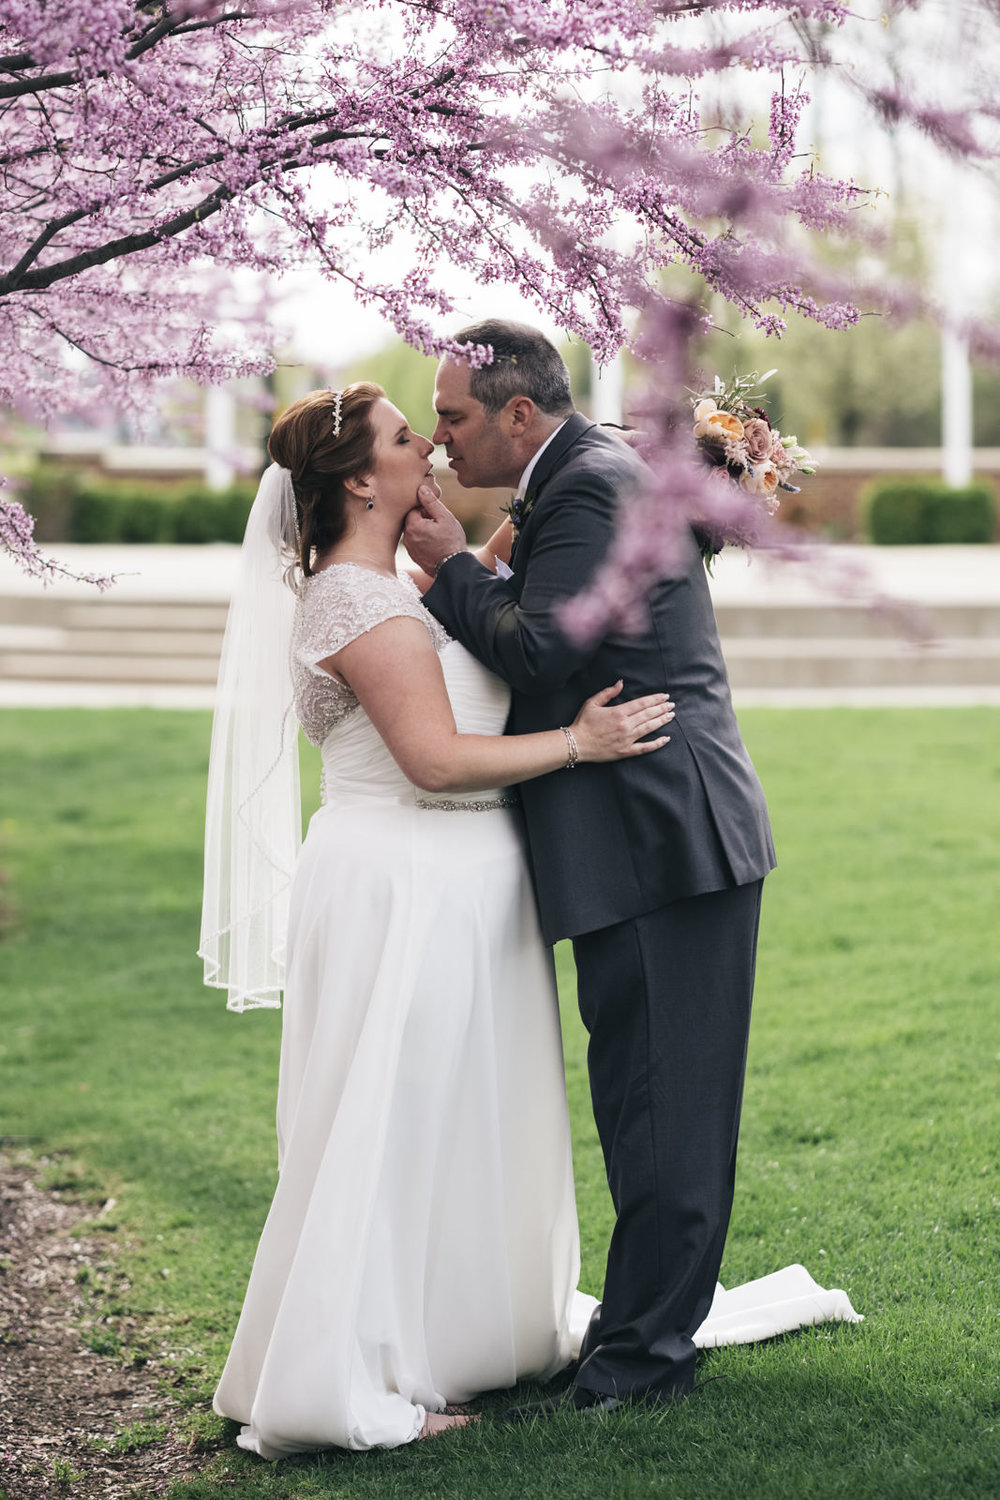 Bride and groom portraits in spring blooms at wedding in Levis Commons.